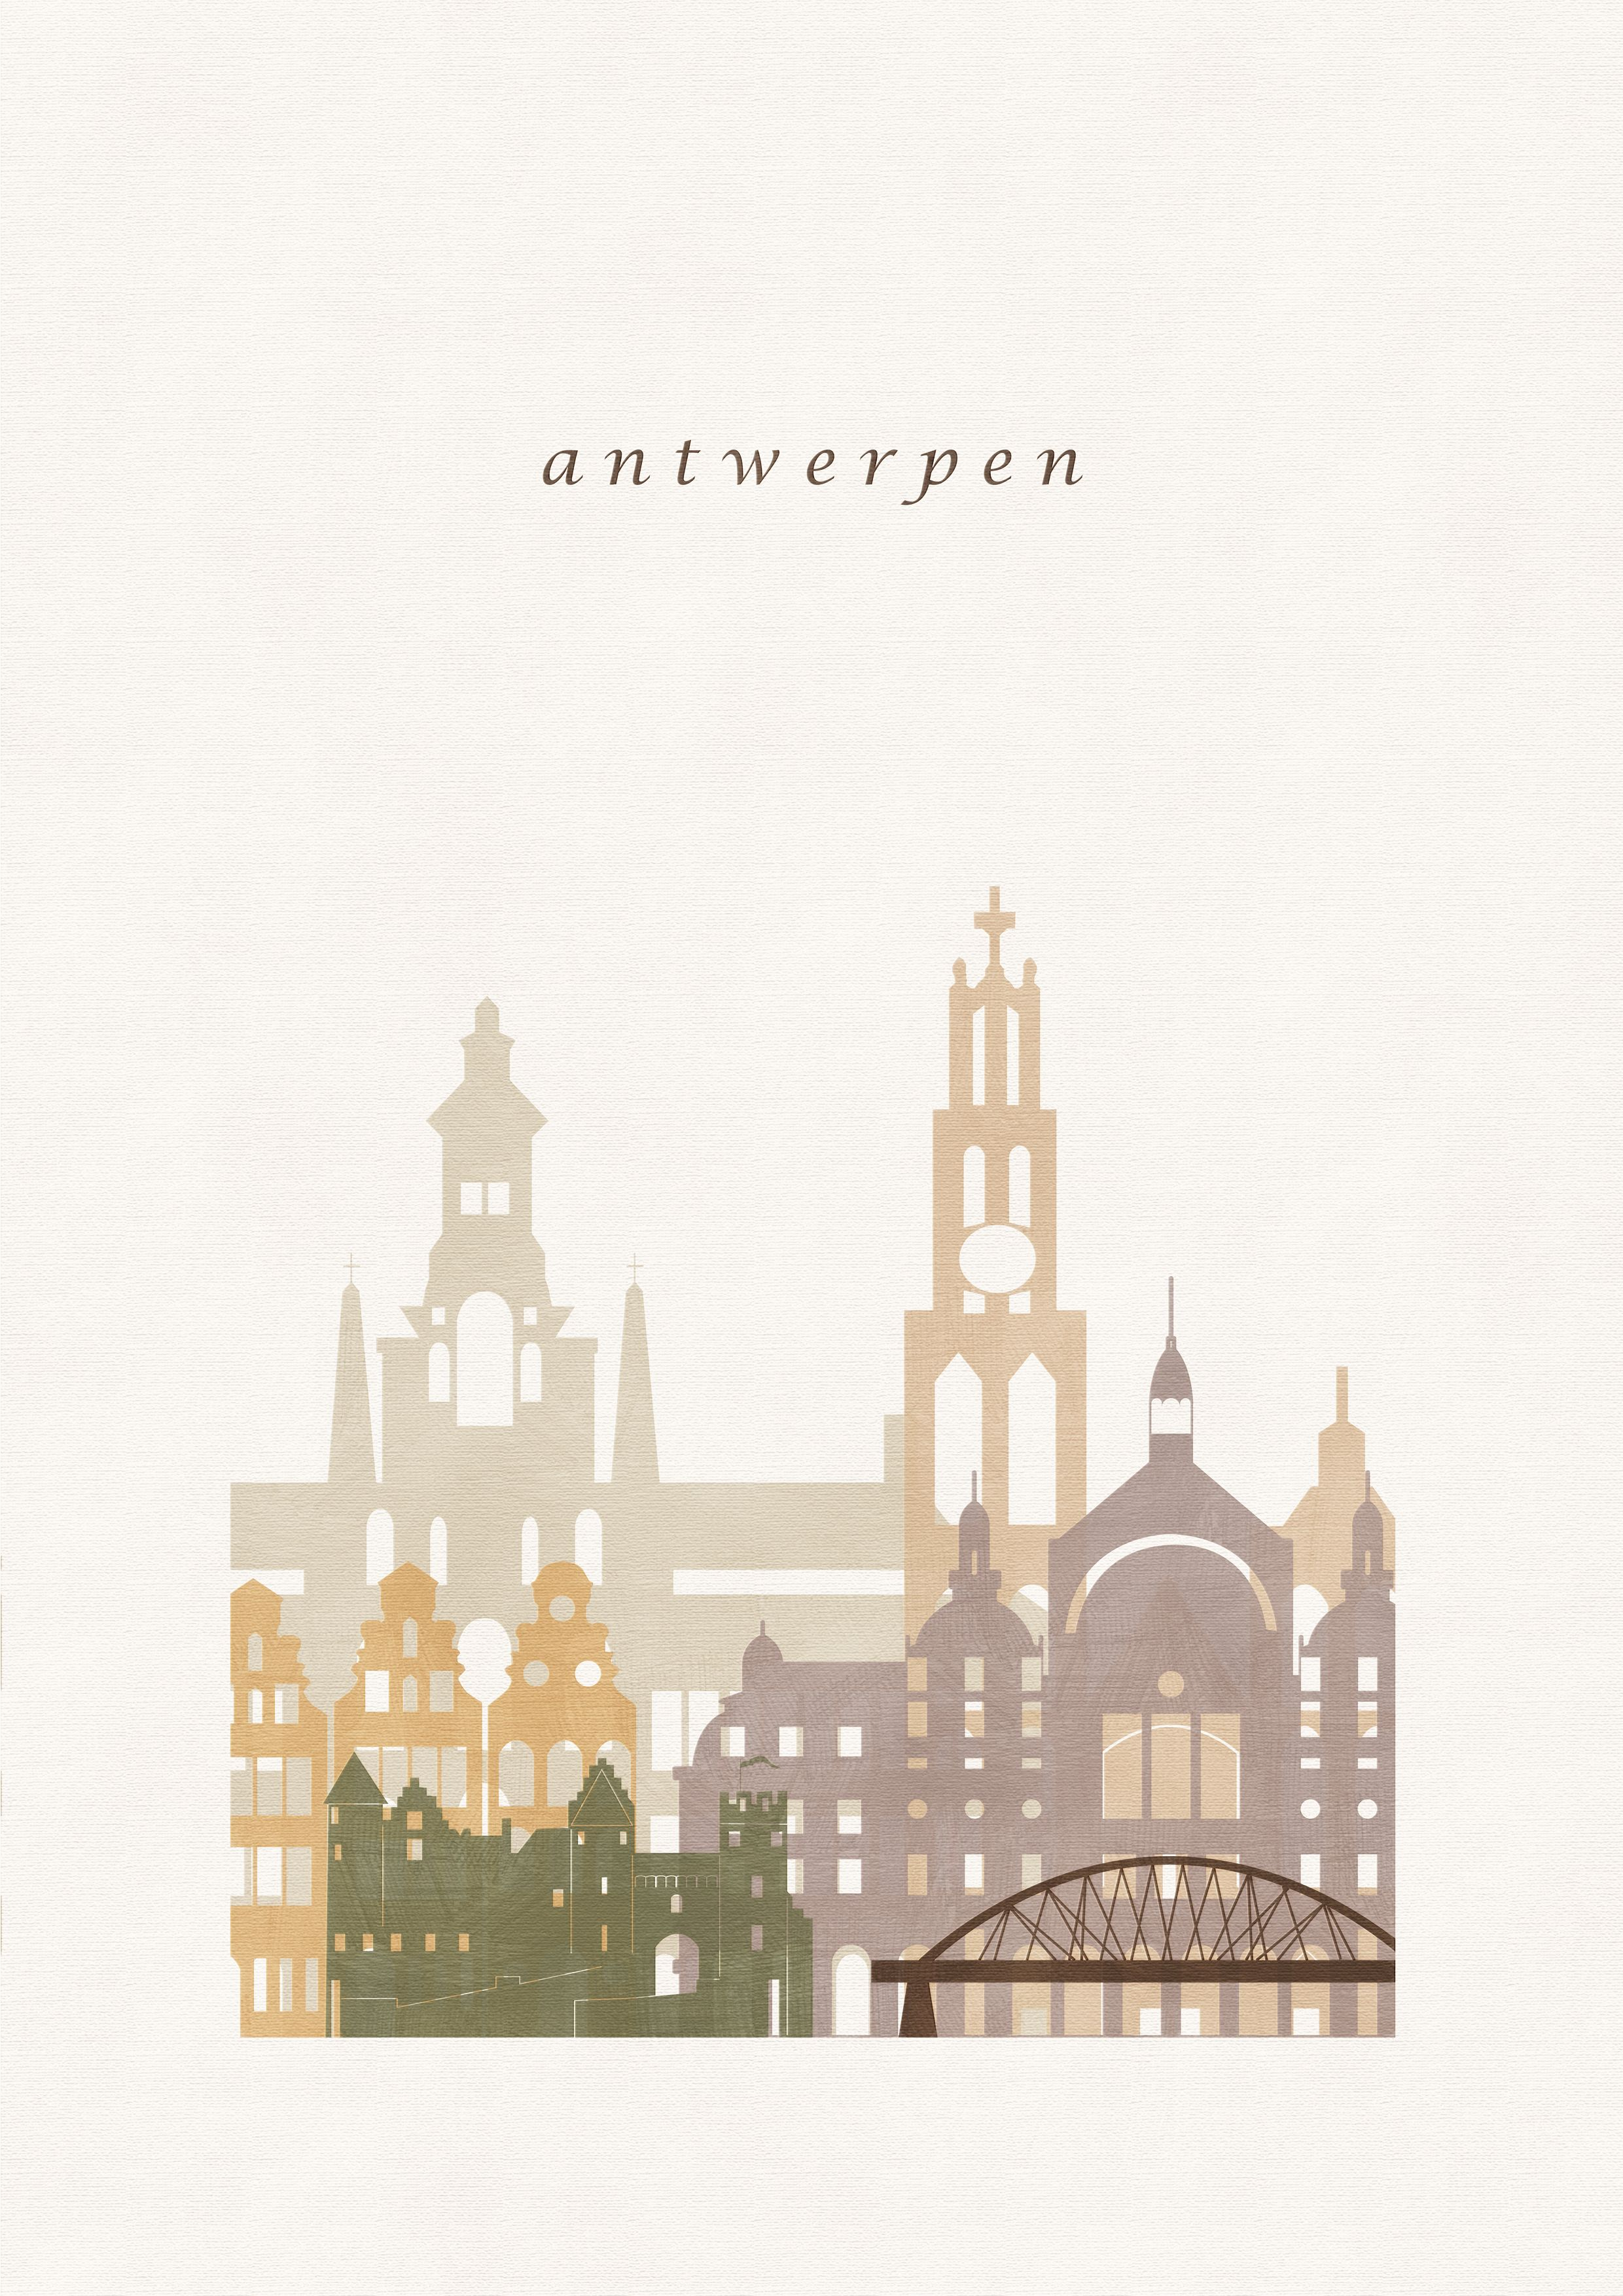 Antwerp Map Print Wall Art Black And White Prints Digital Etsy In 2020 Trendy Wall Art Travel Pictures Map Art